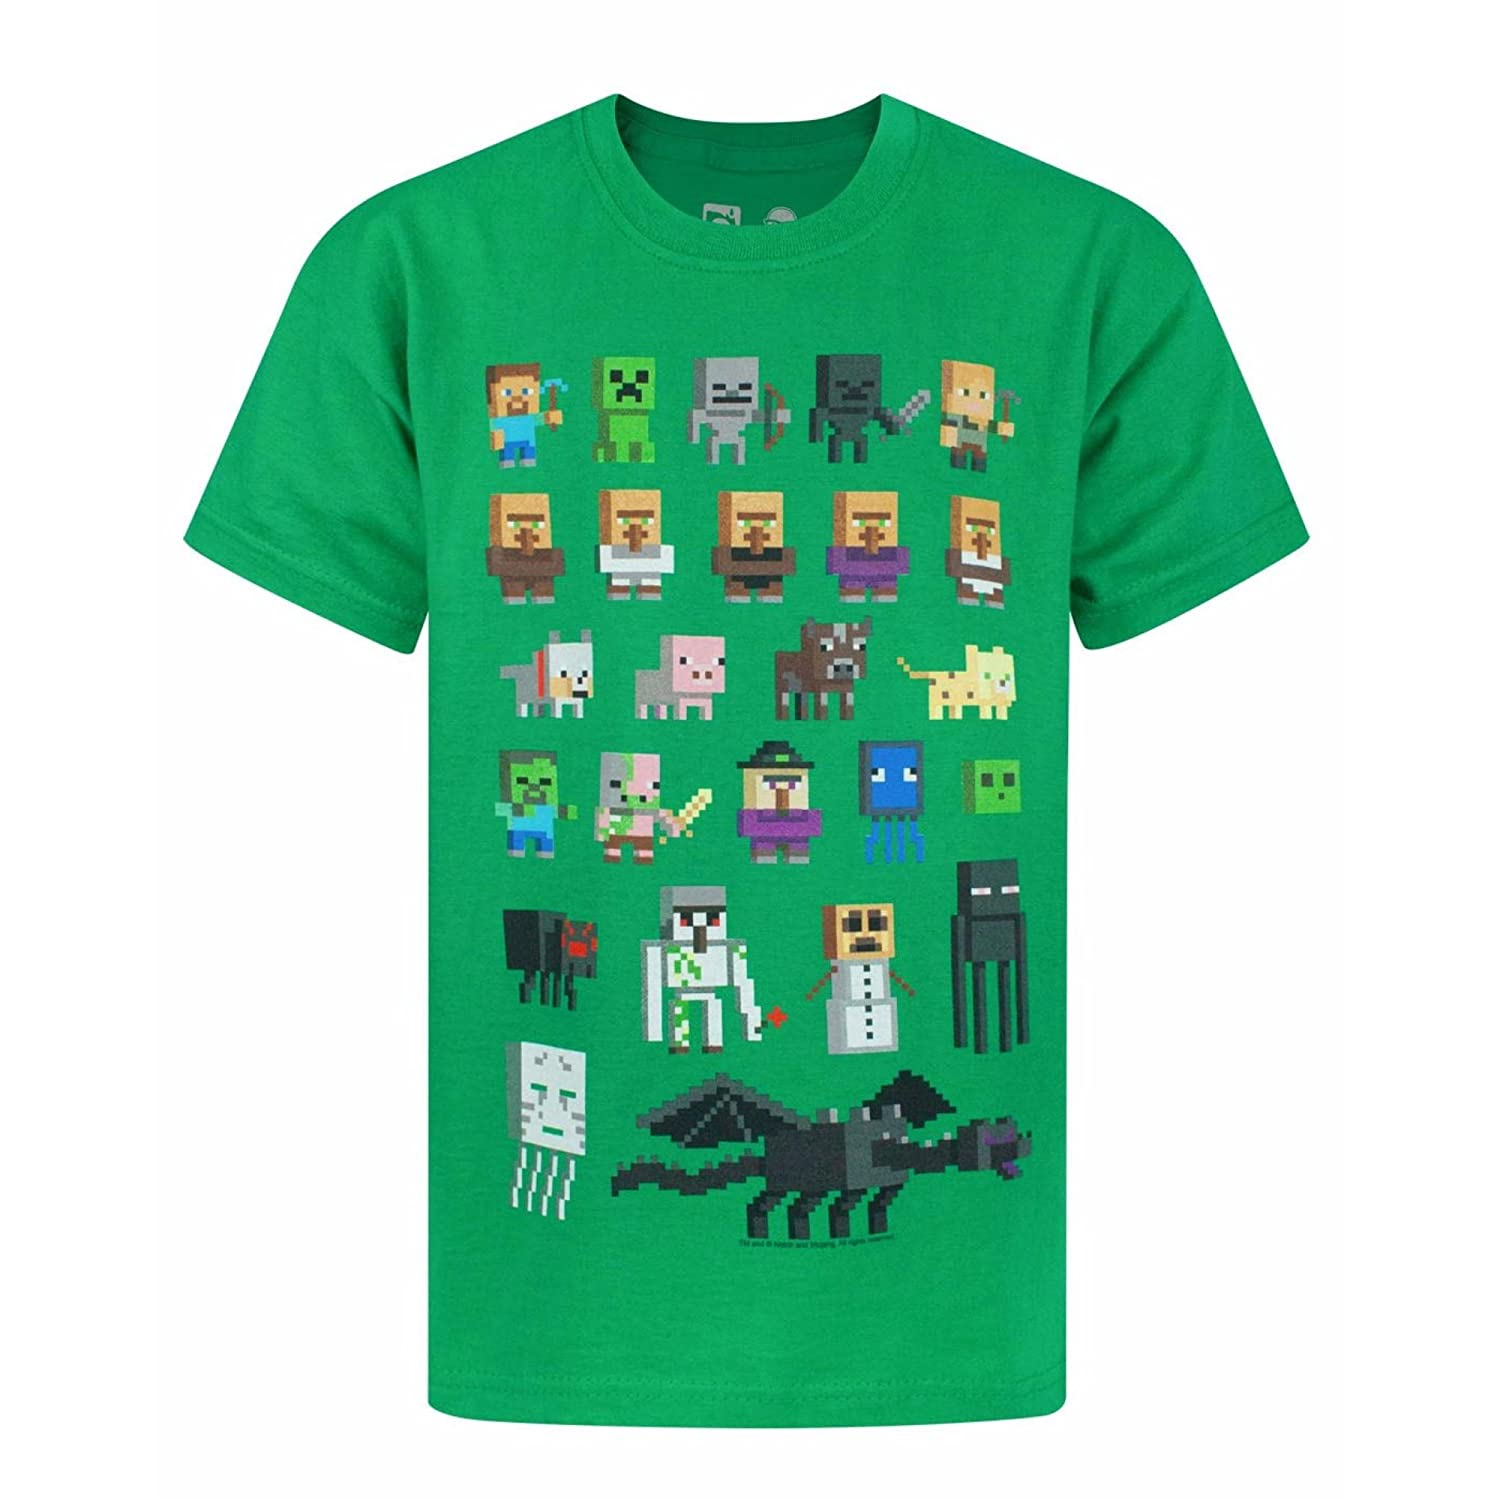 Amazon.com: Minecraft Boys\u0027 Minecraft Short Sleeved T-shirt: Clothing